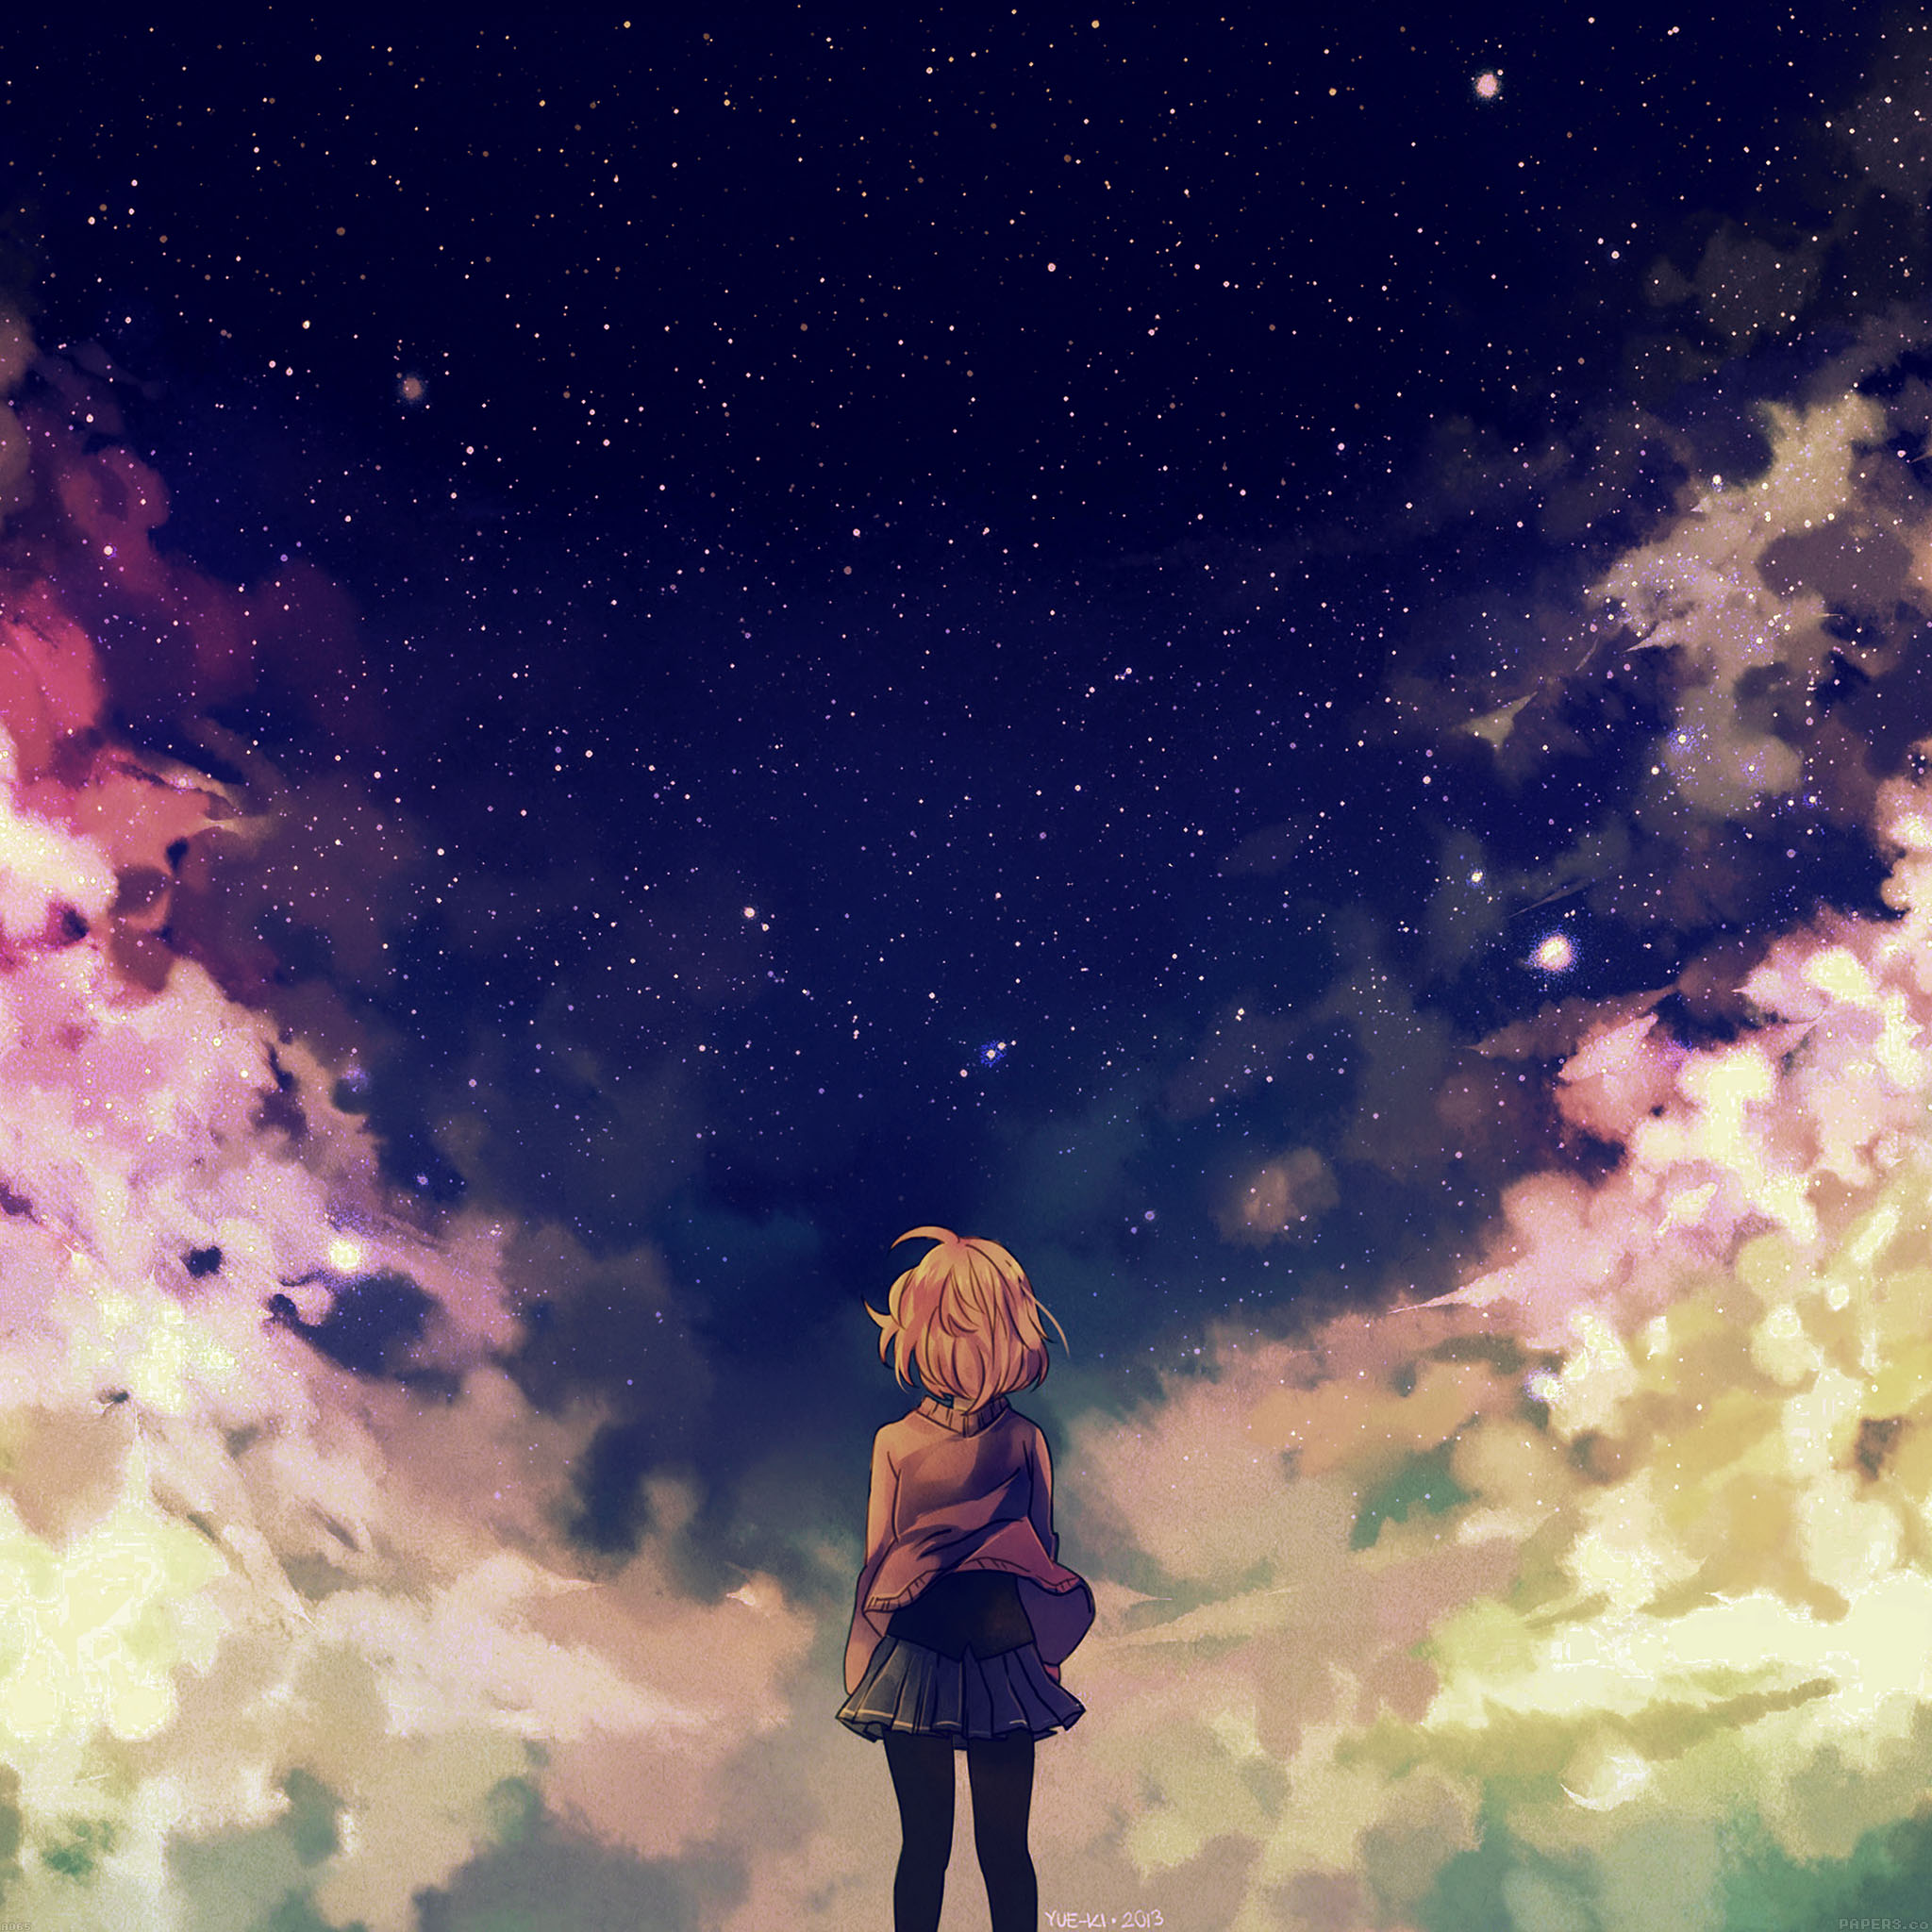 ad65-starry-space-illust-anime-girl-wallpaper